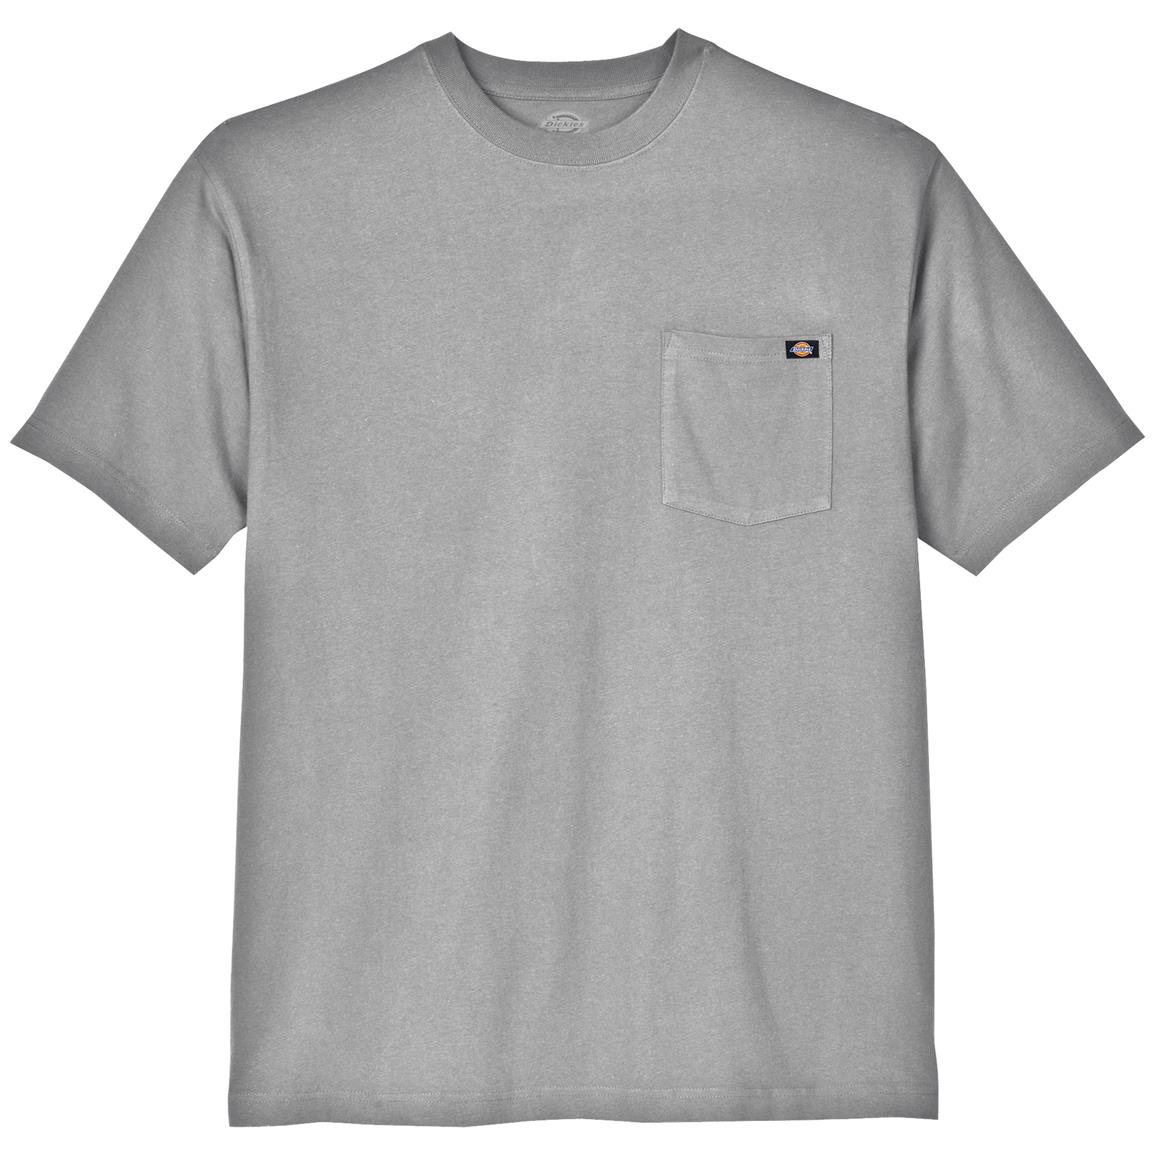 Dickies® Short-sleeved Heavyweight Crew Neck T-shirt, Heather Gray